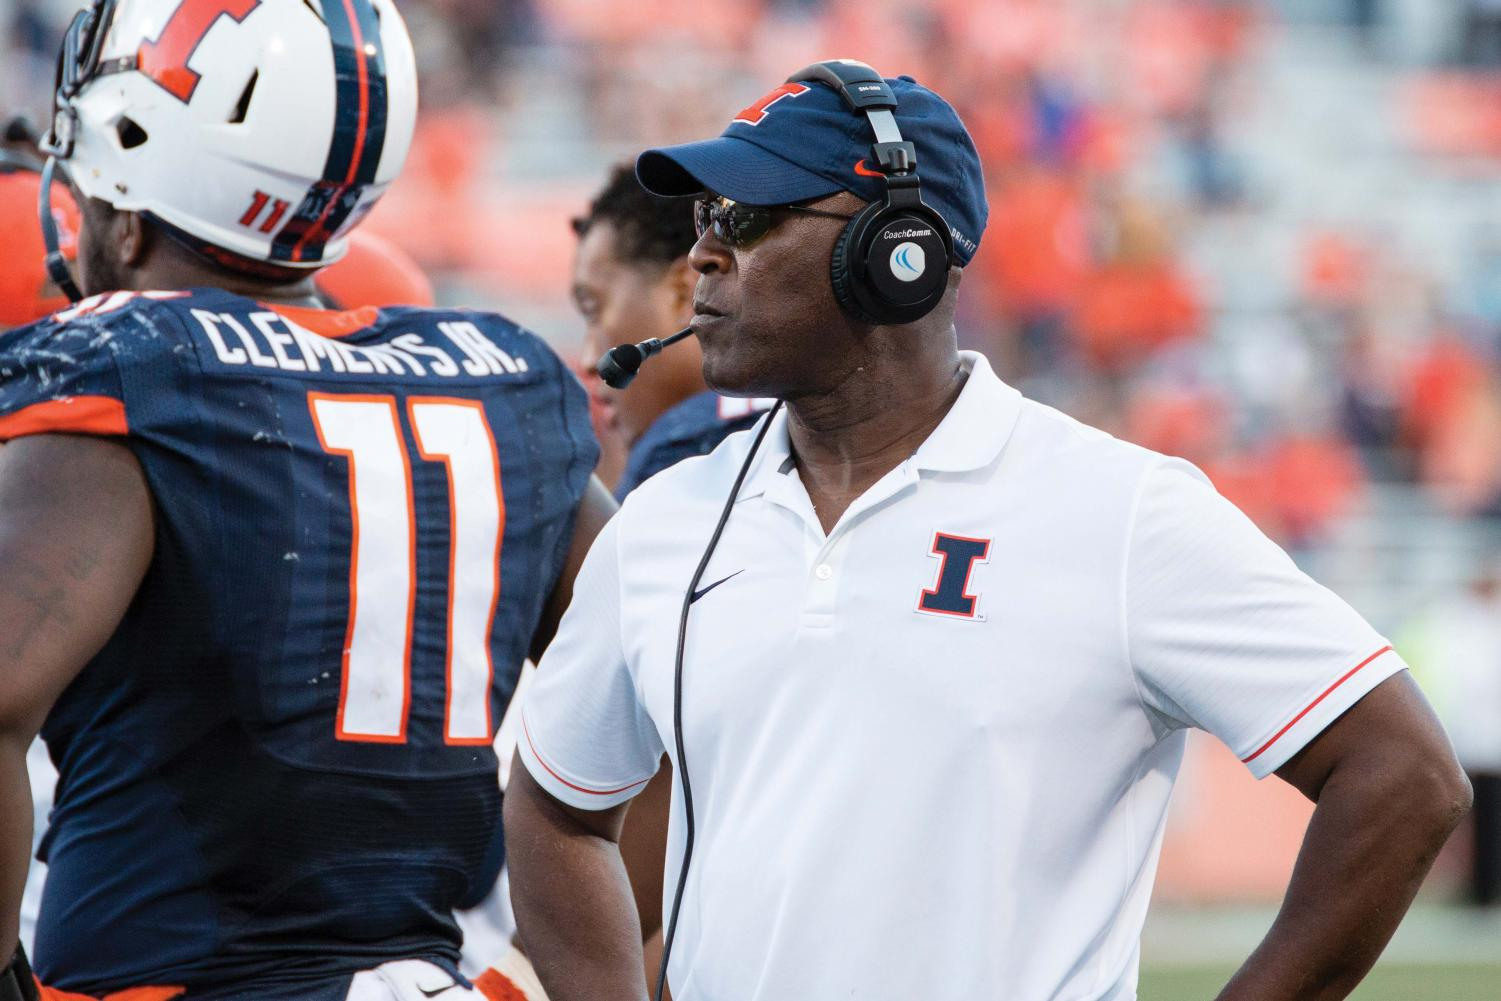 Illinois head coach Lovie Smith walks down the sideline during a timeout in the the game against Western Michigan at Memorial Stadium on Saturday, September 17. The Illini lost 34-10.